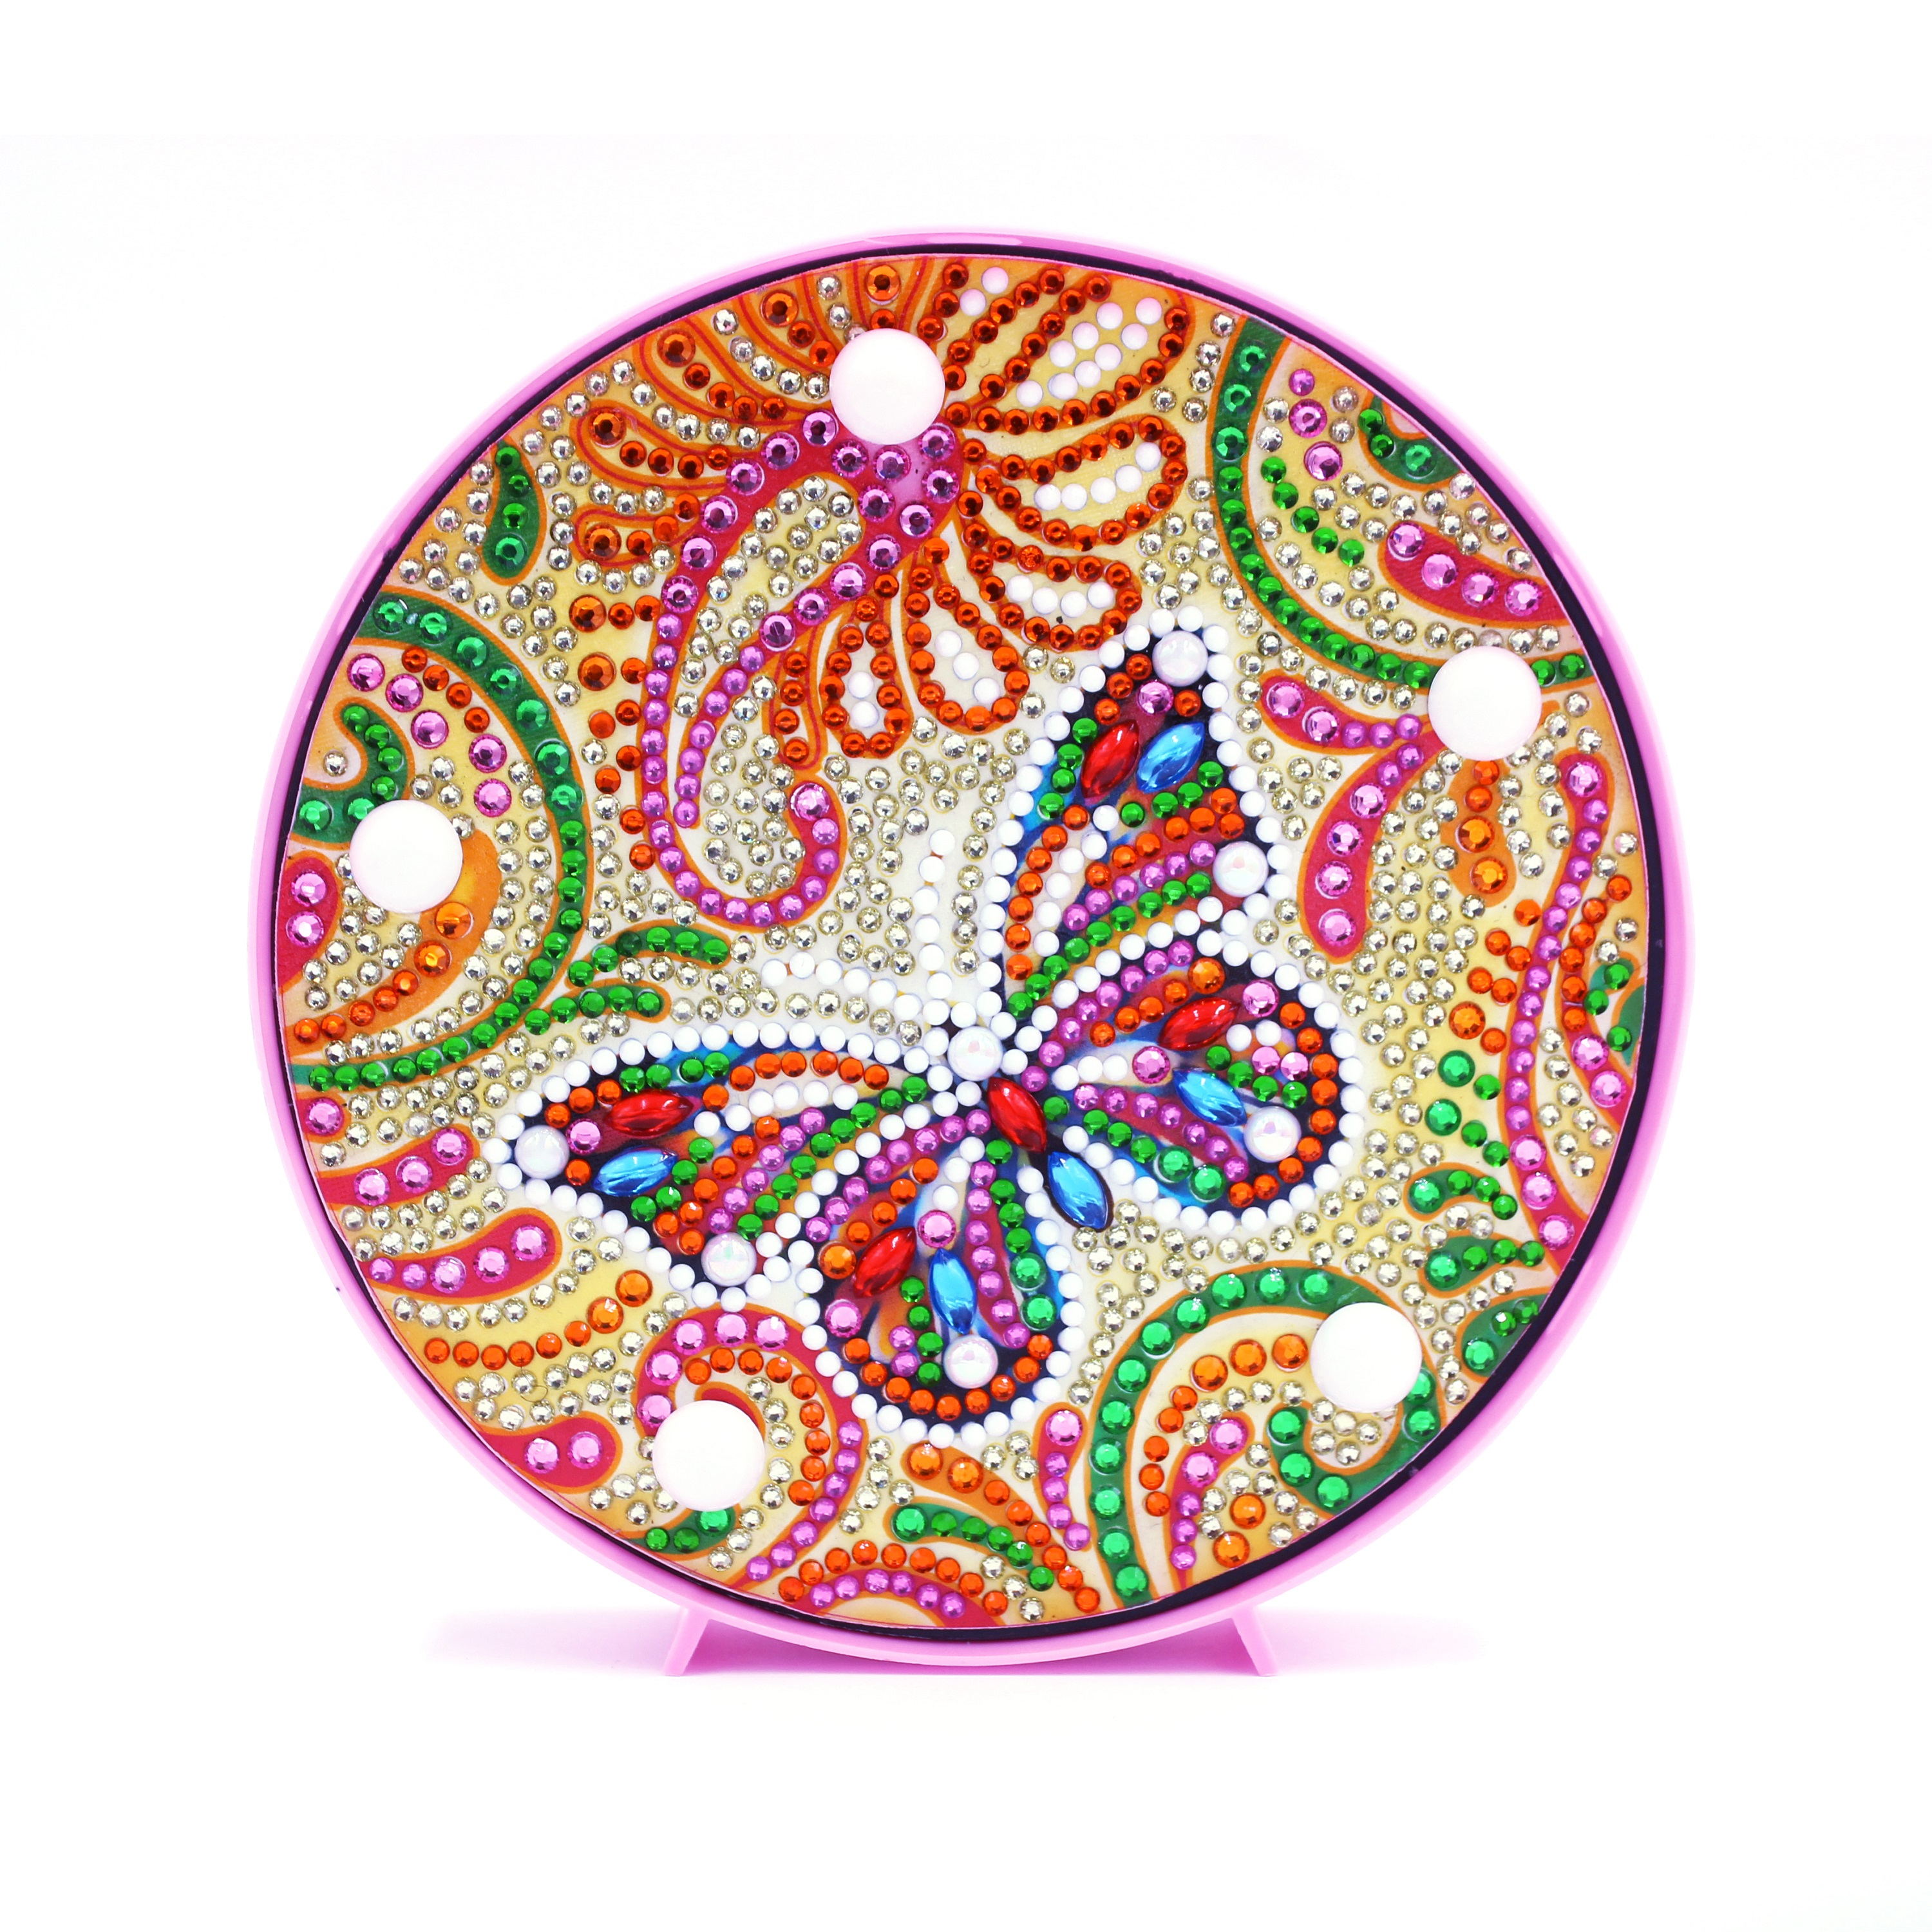 Us 8 75 5d Diy Diamond Pianitng With Frame Diy Art Crafts For Kids Led Light Cross Stitch Butterfly Caton Design Christmas Gift Zxd017 In Diamond